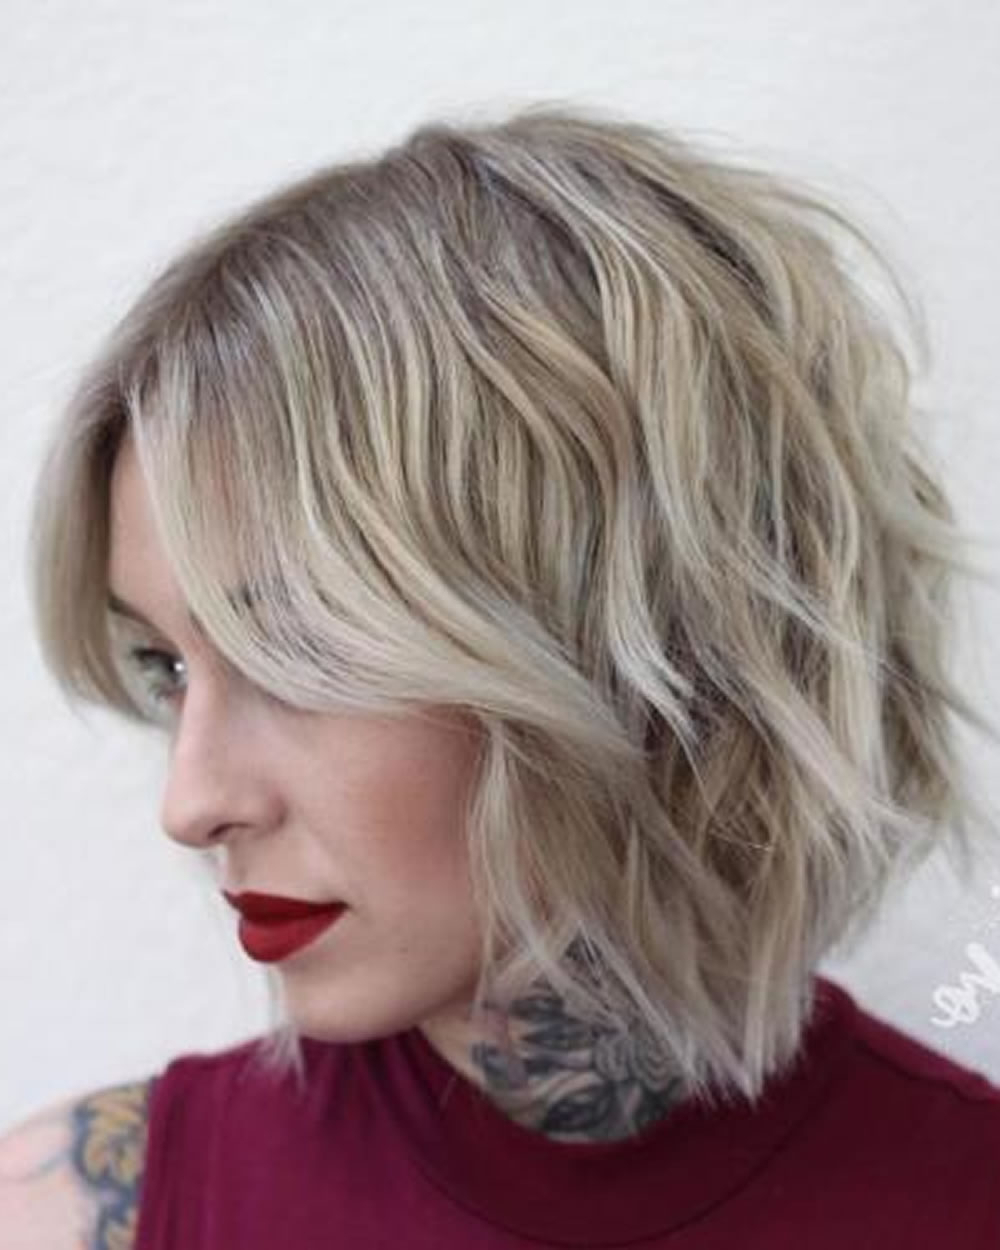 Overwhelming Short Choppy Haircuts For 2018 2019 (Bob+Pixie Hair Inside Short Choppy Hairstyles For Thick Hair (View 12 of 20)